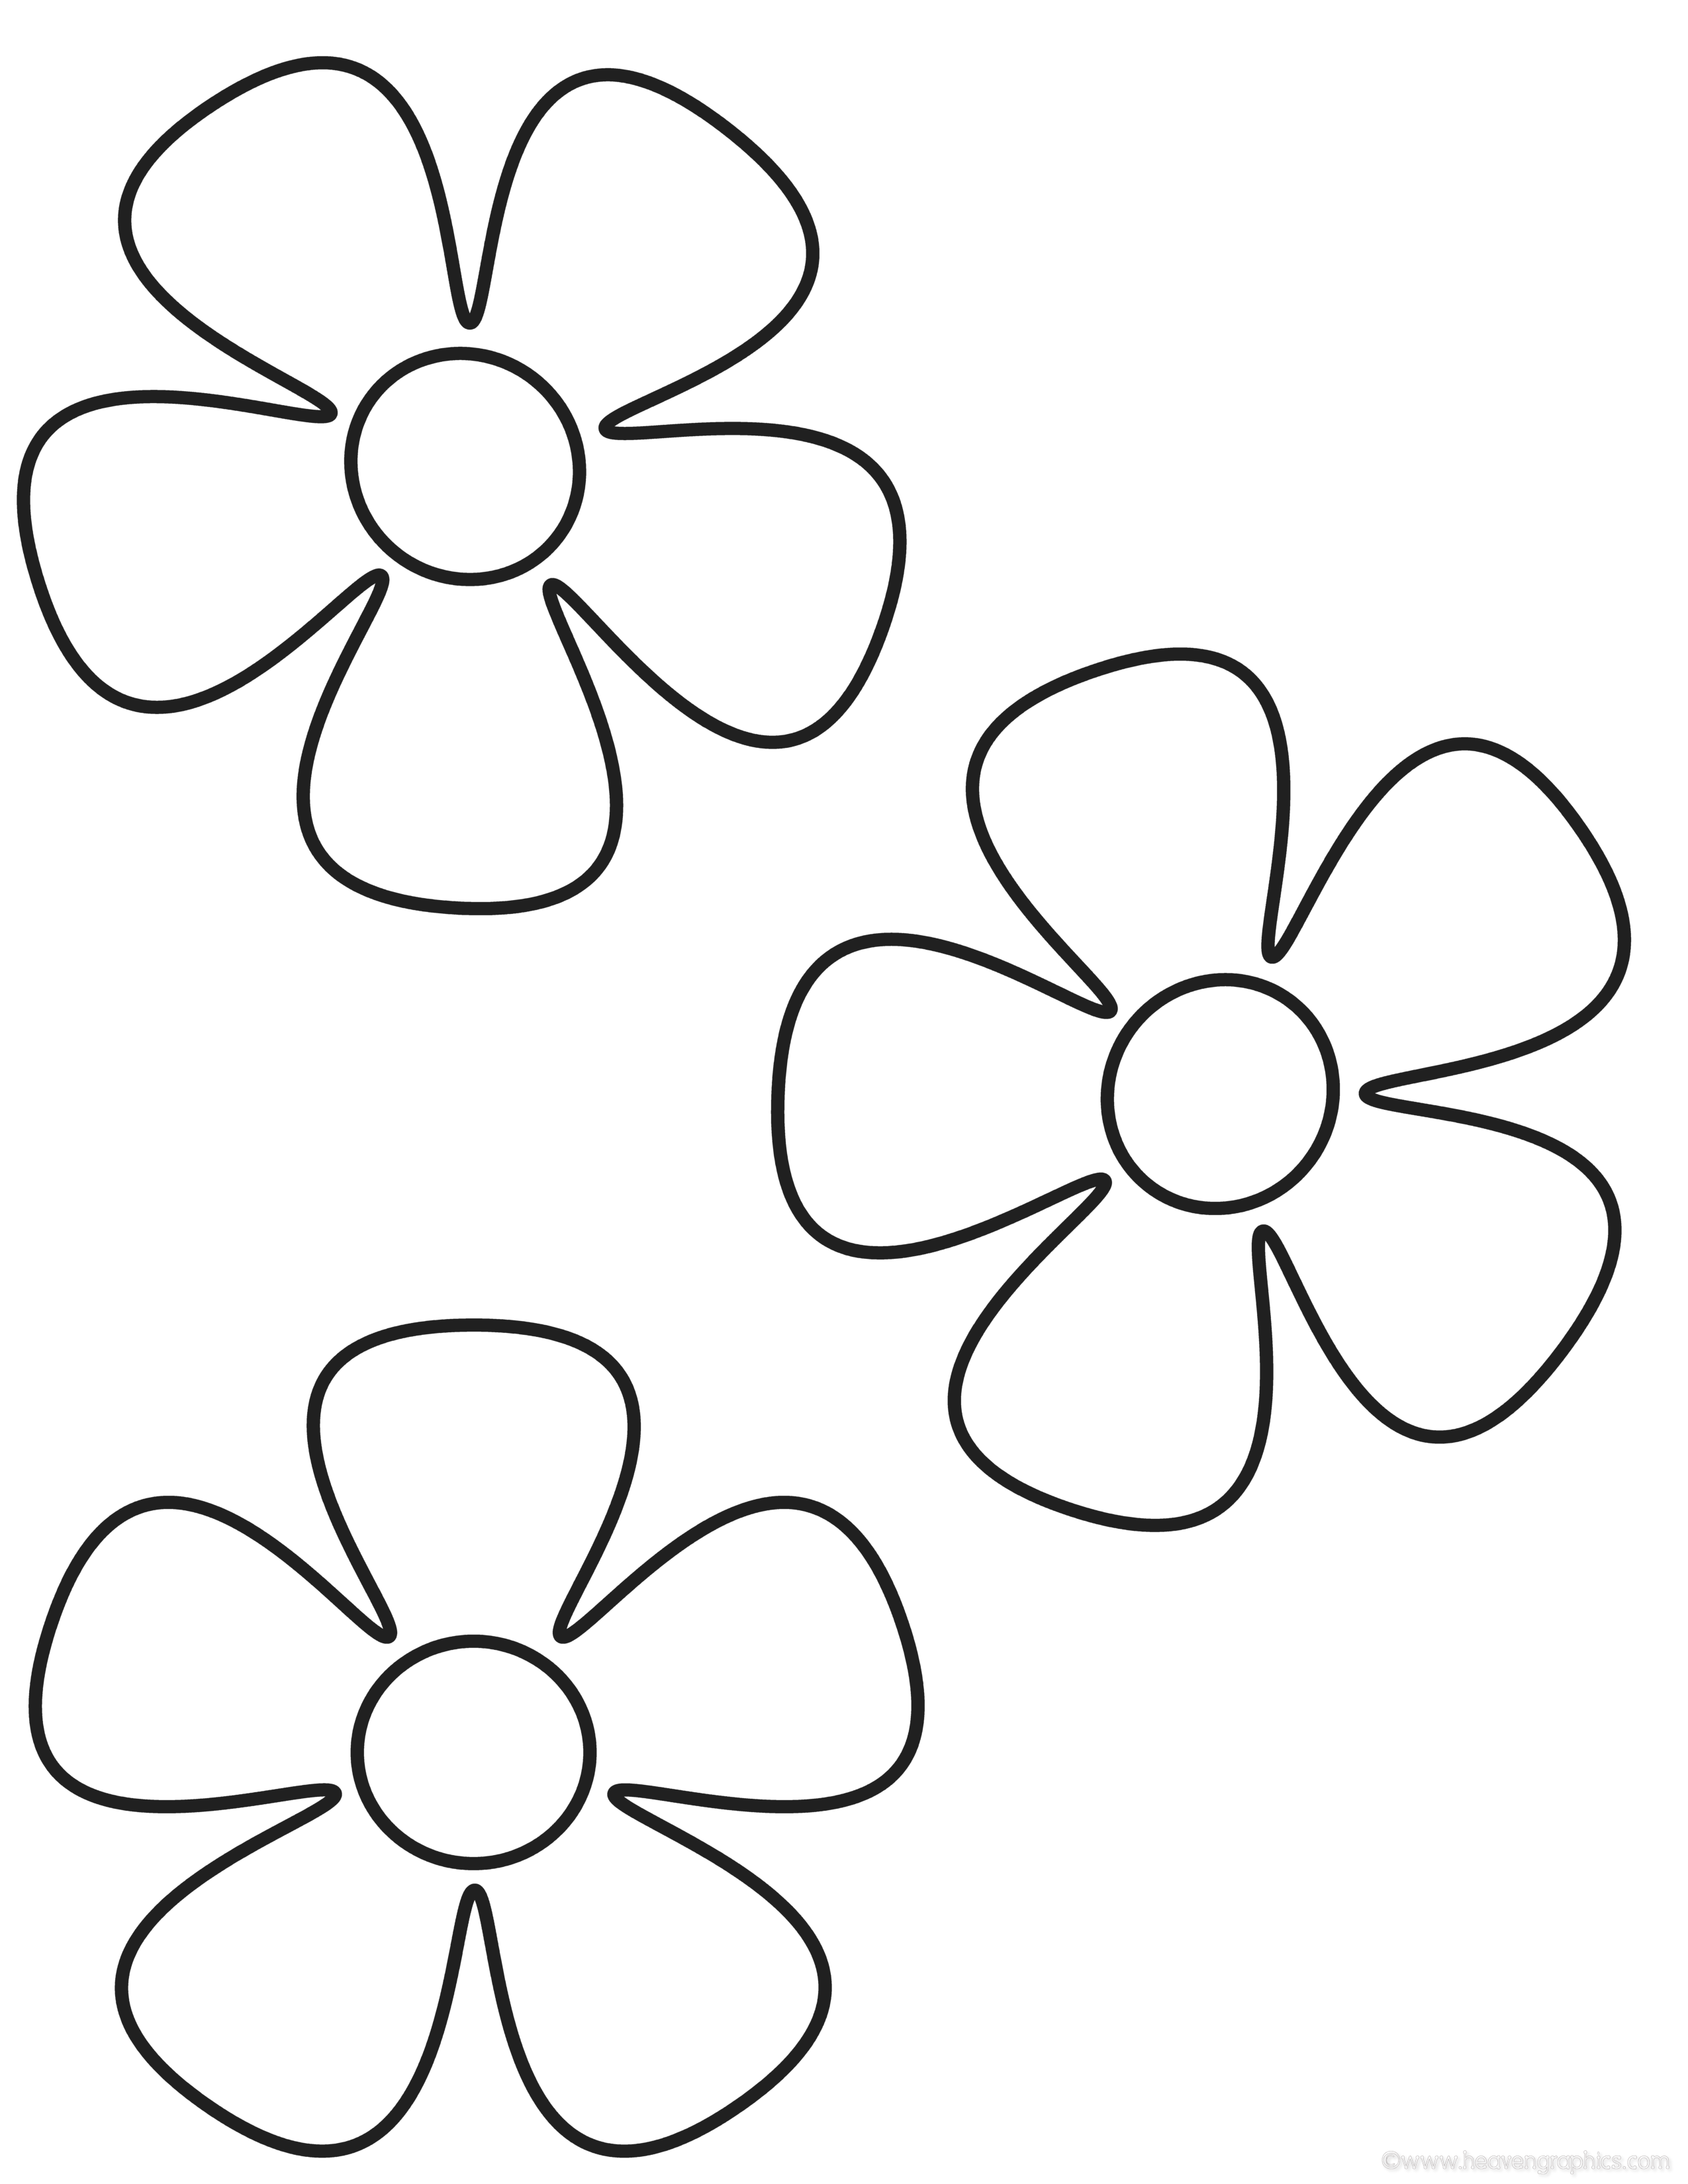 Printable Coloring Pages Flowers Kids Flower Coloring Pages Wallpaper